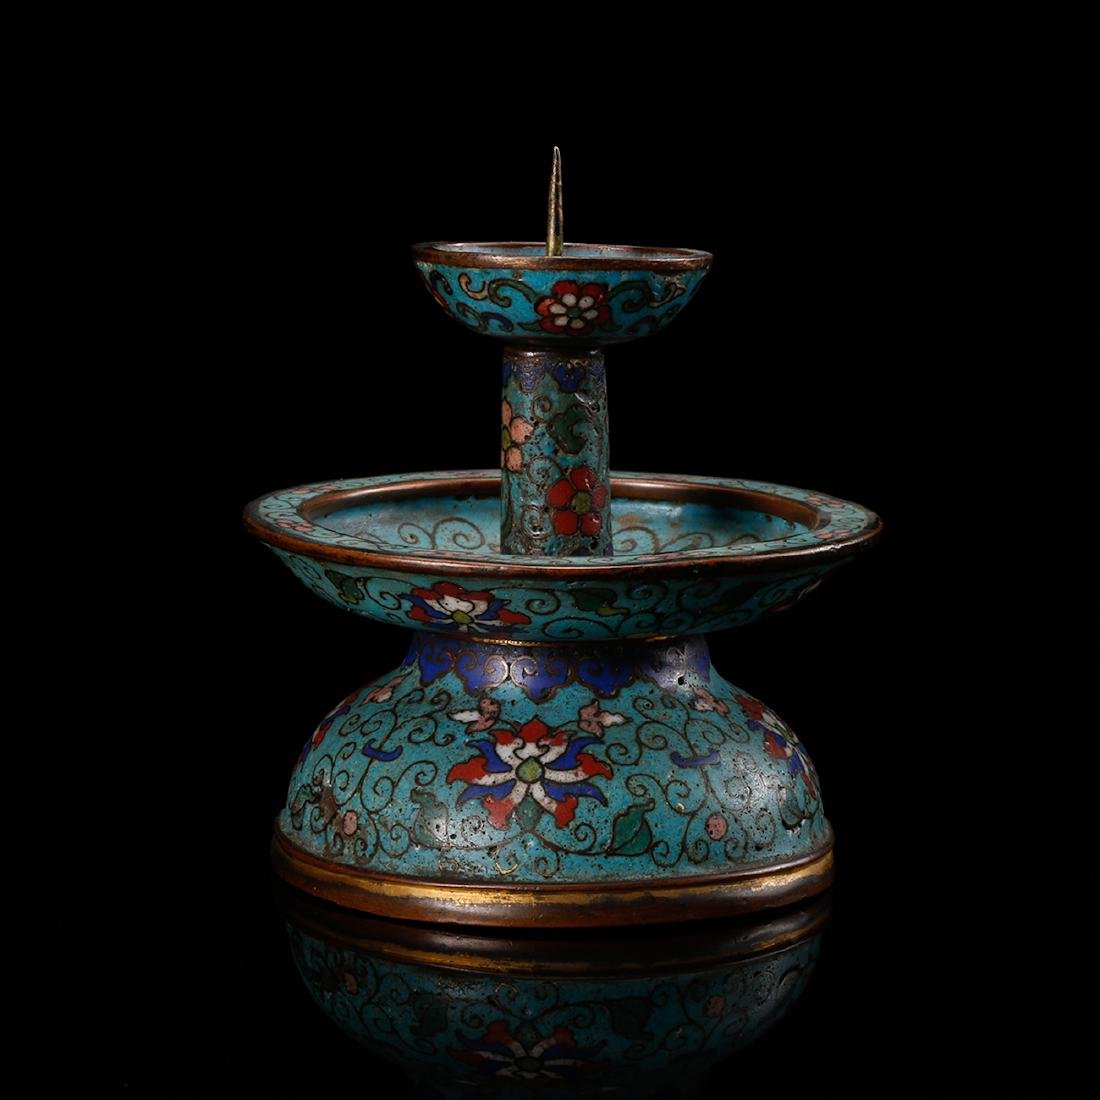 CHINESE CLOISONNE FOLIAGE CANDLE STAND